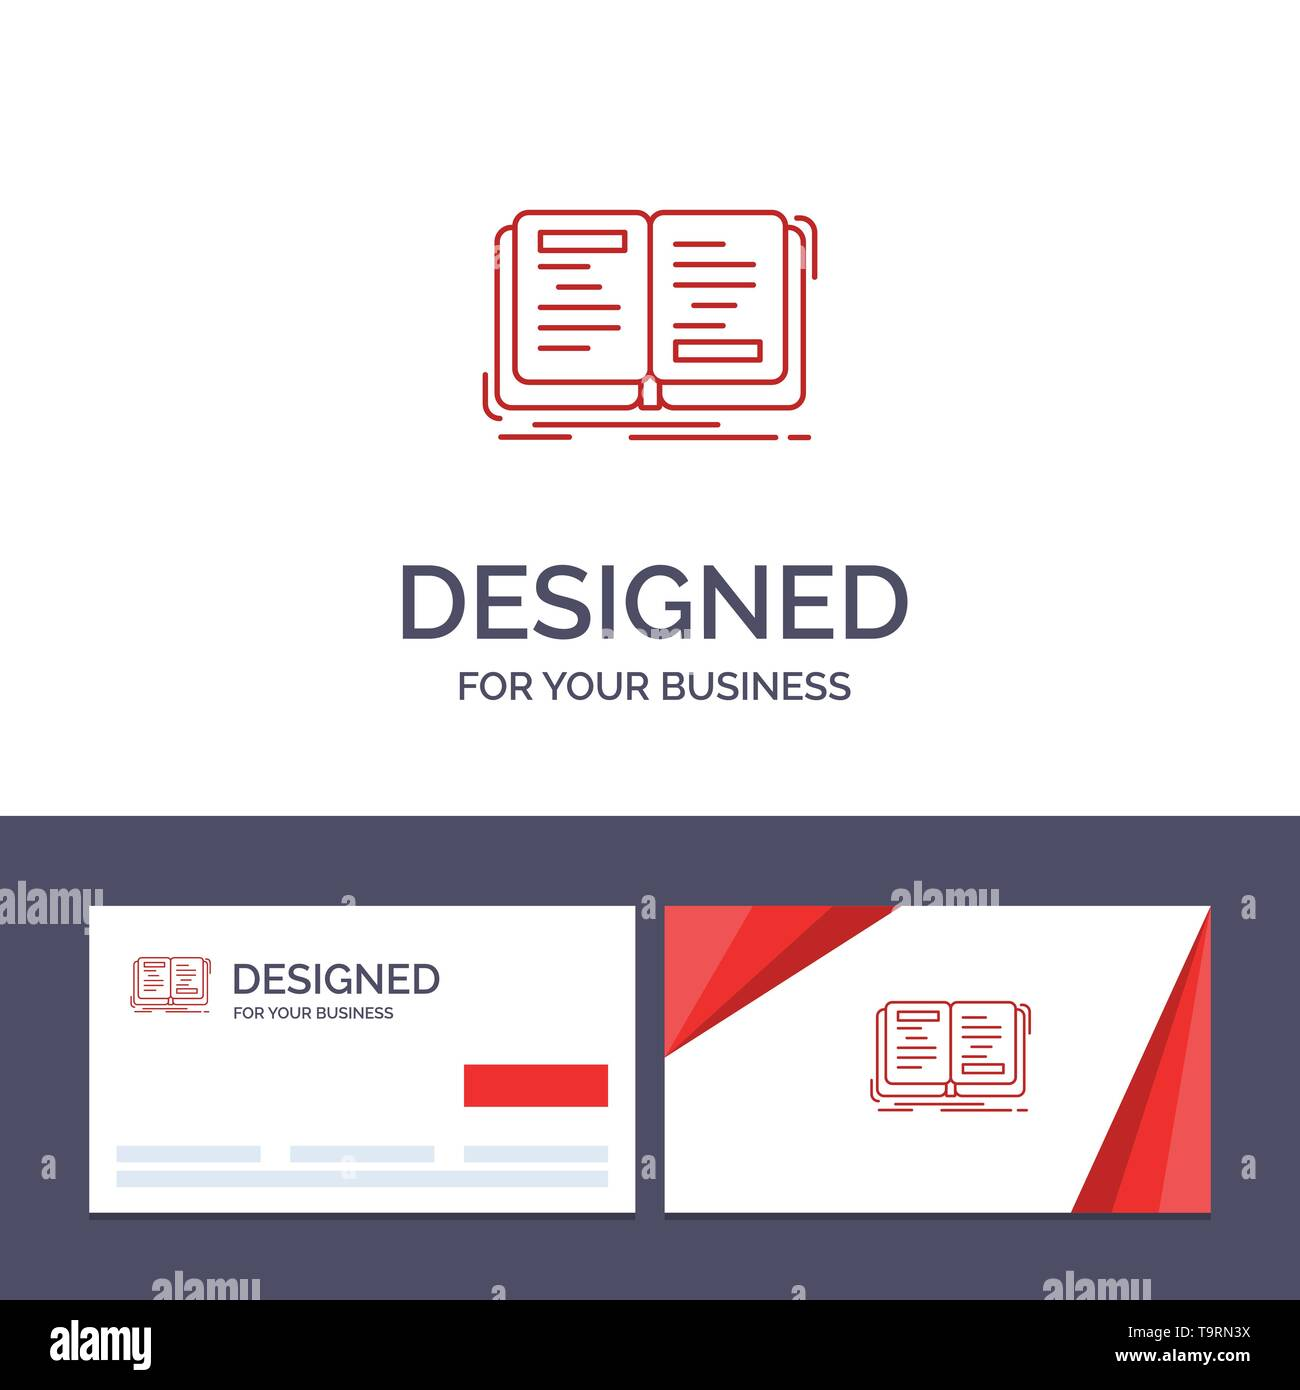 Creative Business Card and Logo template Book, Novel, Story, Writing, Theory Vector Illustration - Stock Image